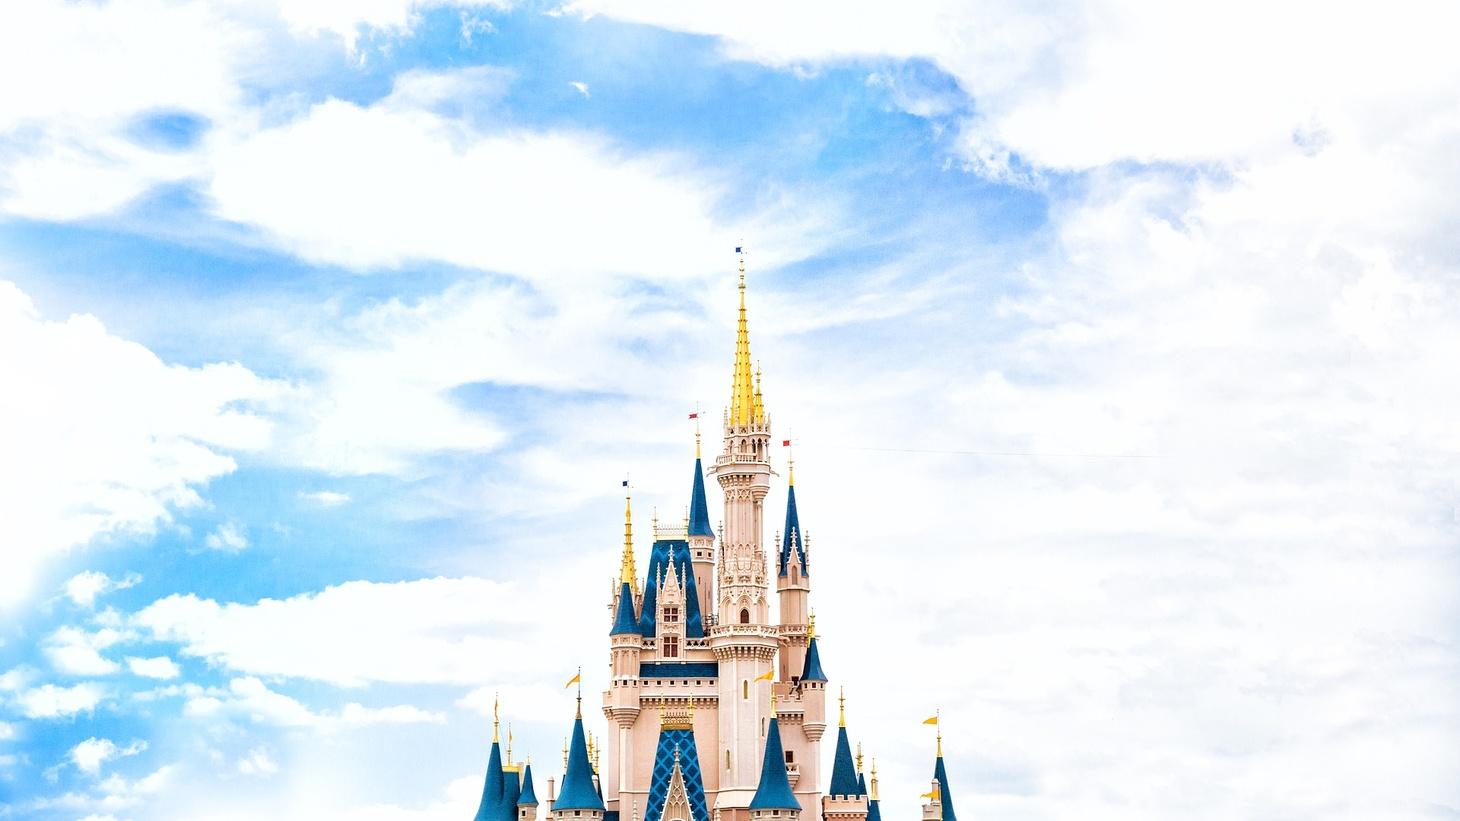 Disney lost $4.72 billion in the second quarter of this year, including a big hit in the theme parks division.